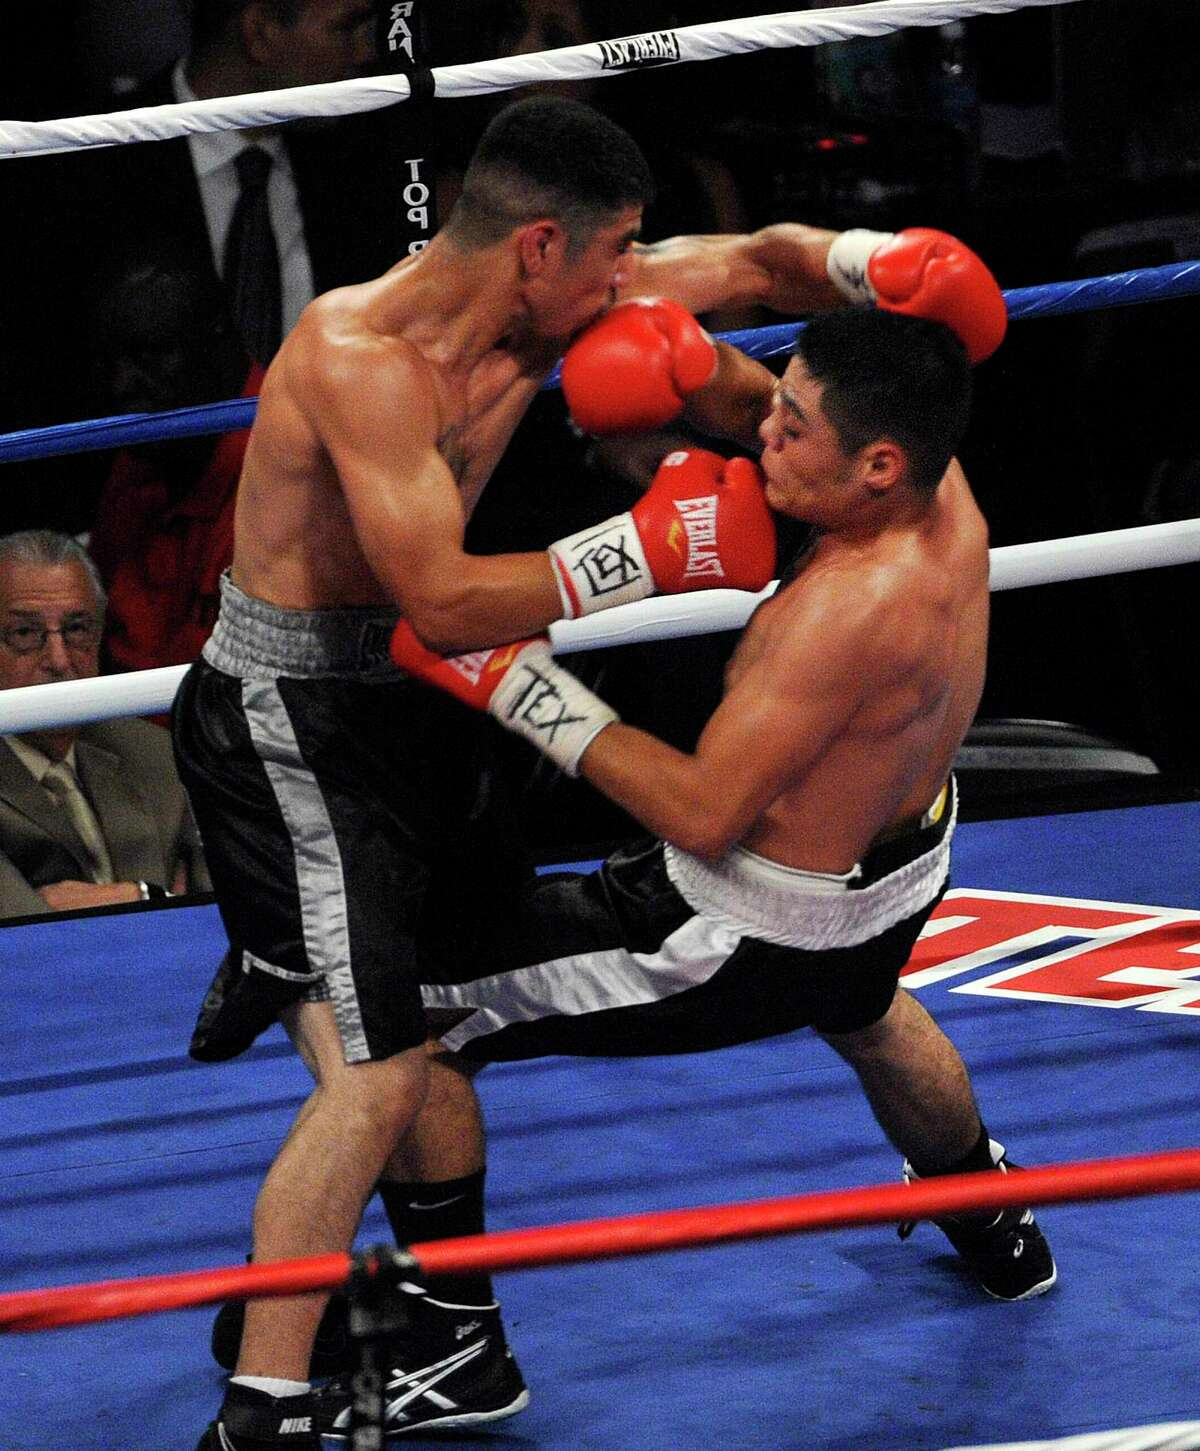 James Cantu of San Antonio knocks down Antonio Games of Laredo in the third round of their super-lightweight division bout during the Latin Fury boxing event at the Alamodome on Saturday, June 26, 2010. Cantu won by unanimous decision. BILLY CALZADA / gcalzada@express-news.net